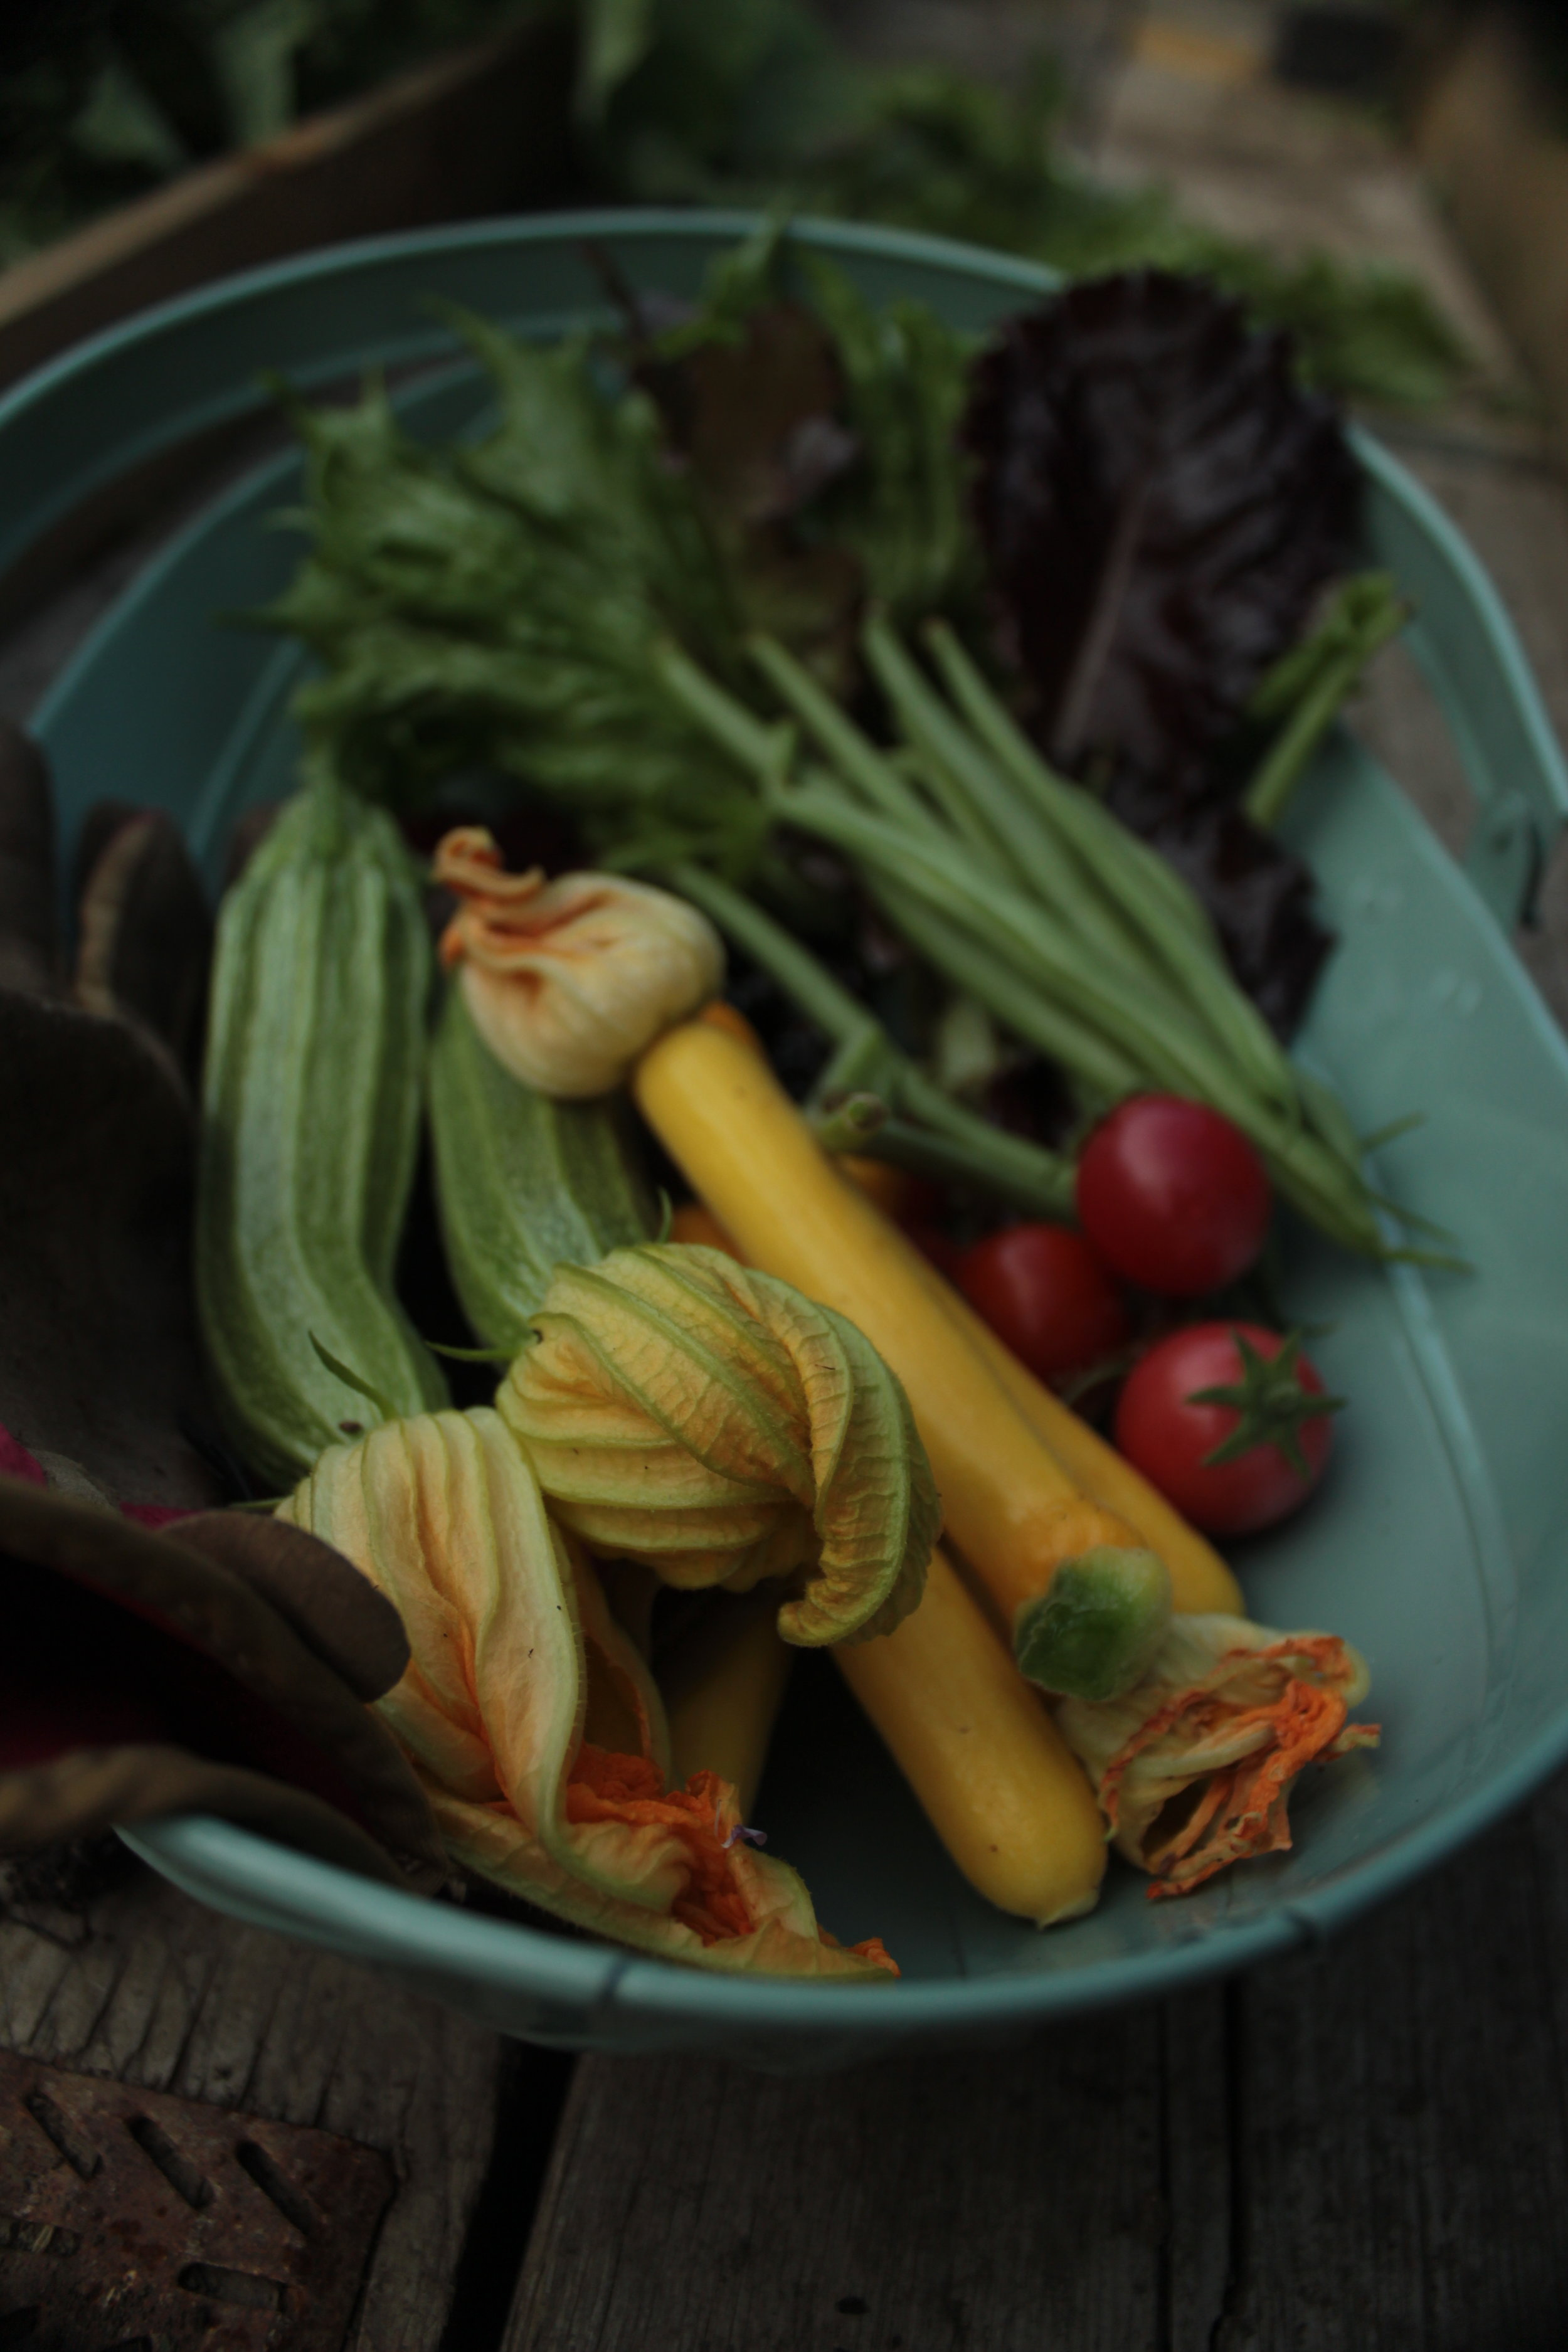 Fruit, Veg and Foraging